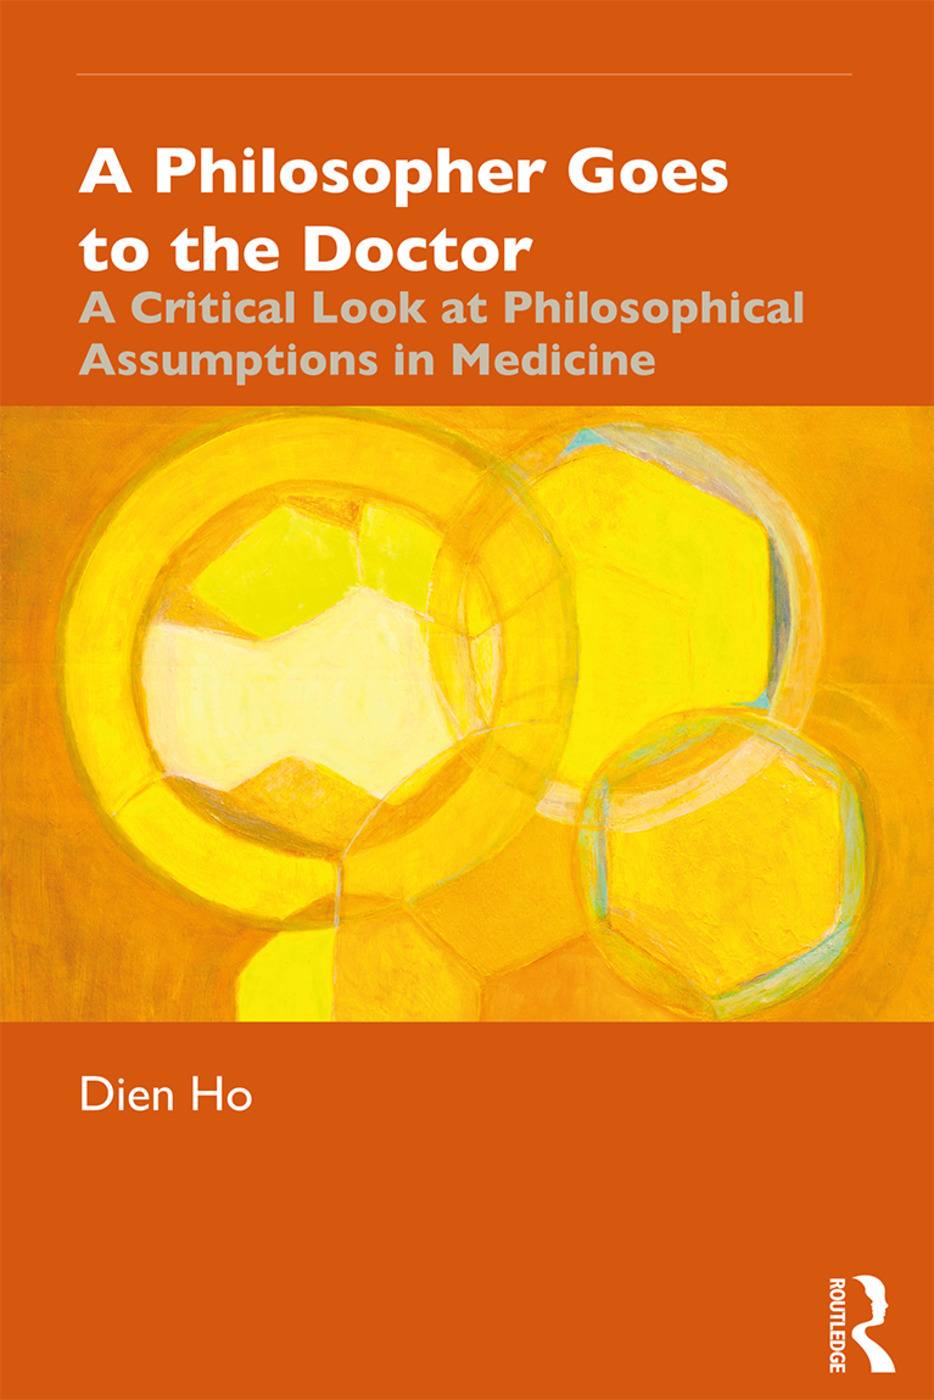 'A Philosopher Goes to the Doctor': Book Review